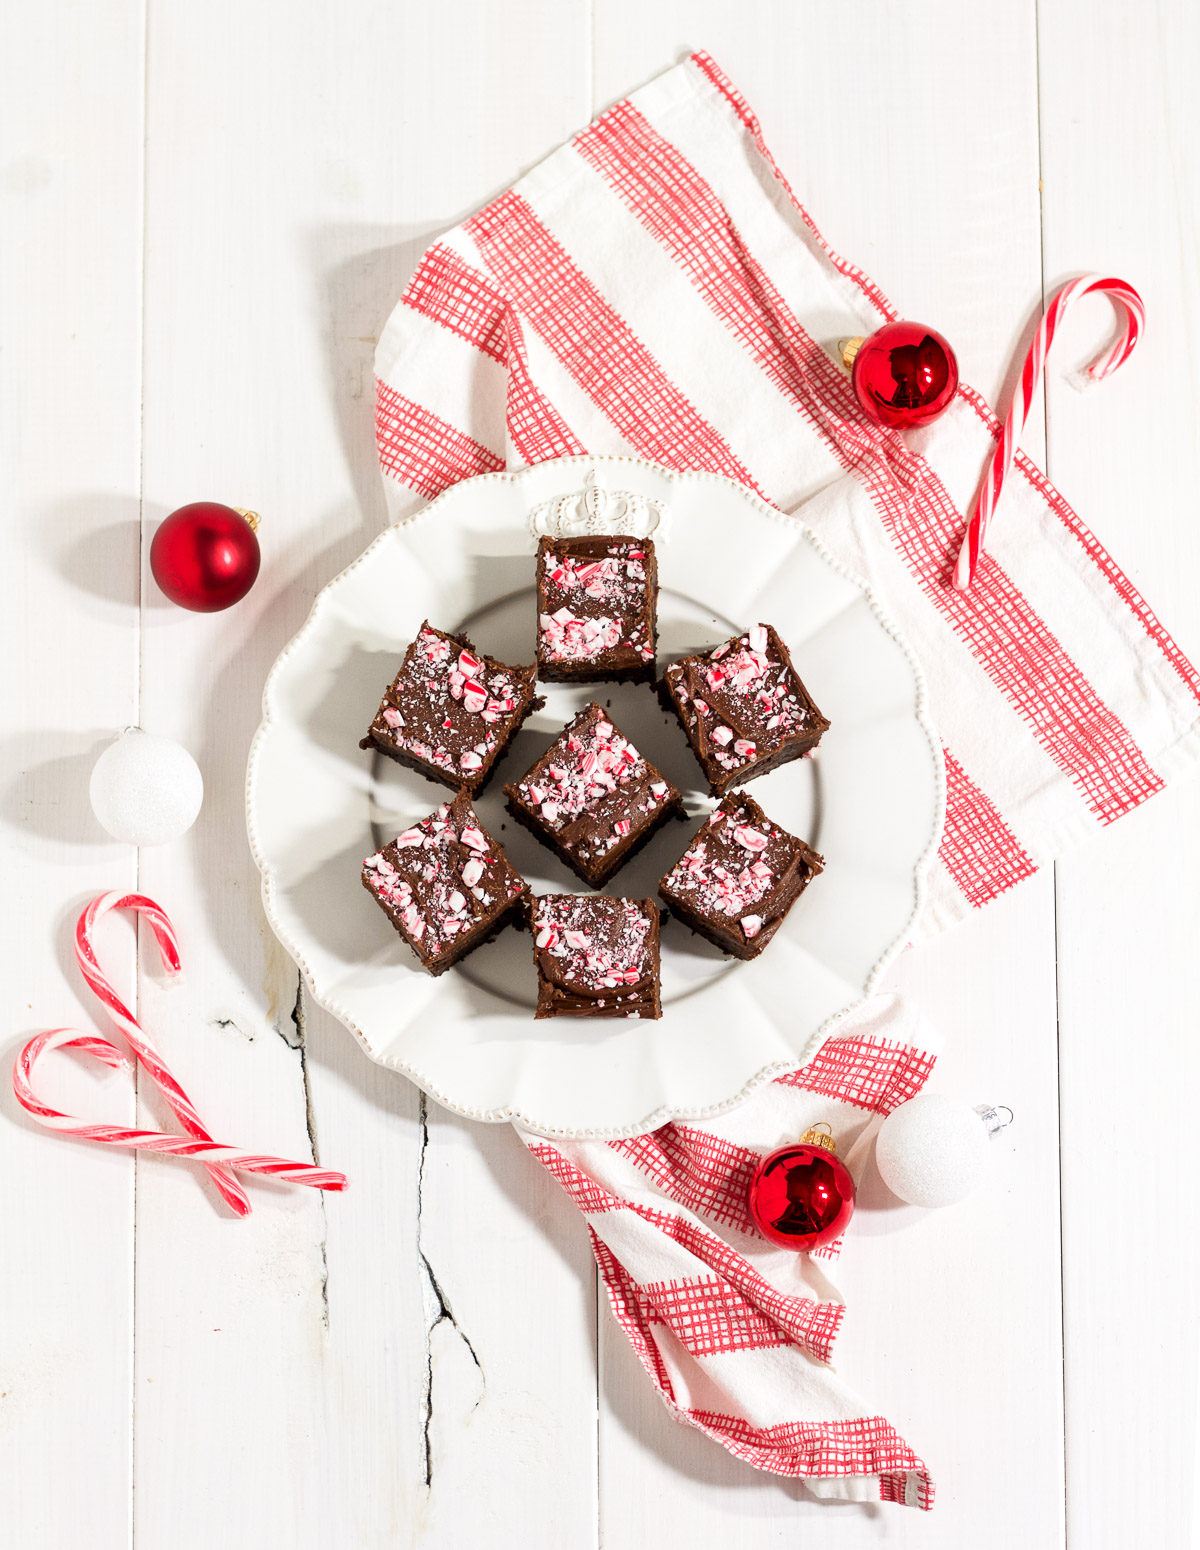 Thanks to a dressed up box mix, these peppermint fudge brownies are rich, delicious, and easy to make!